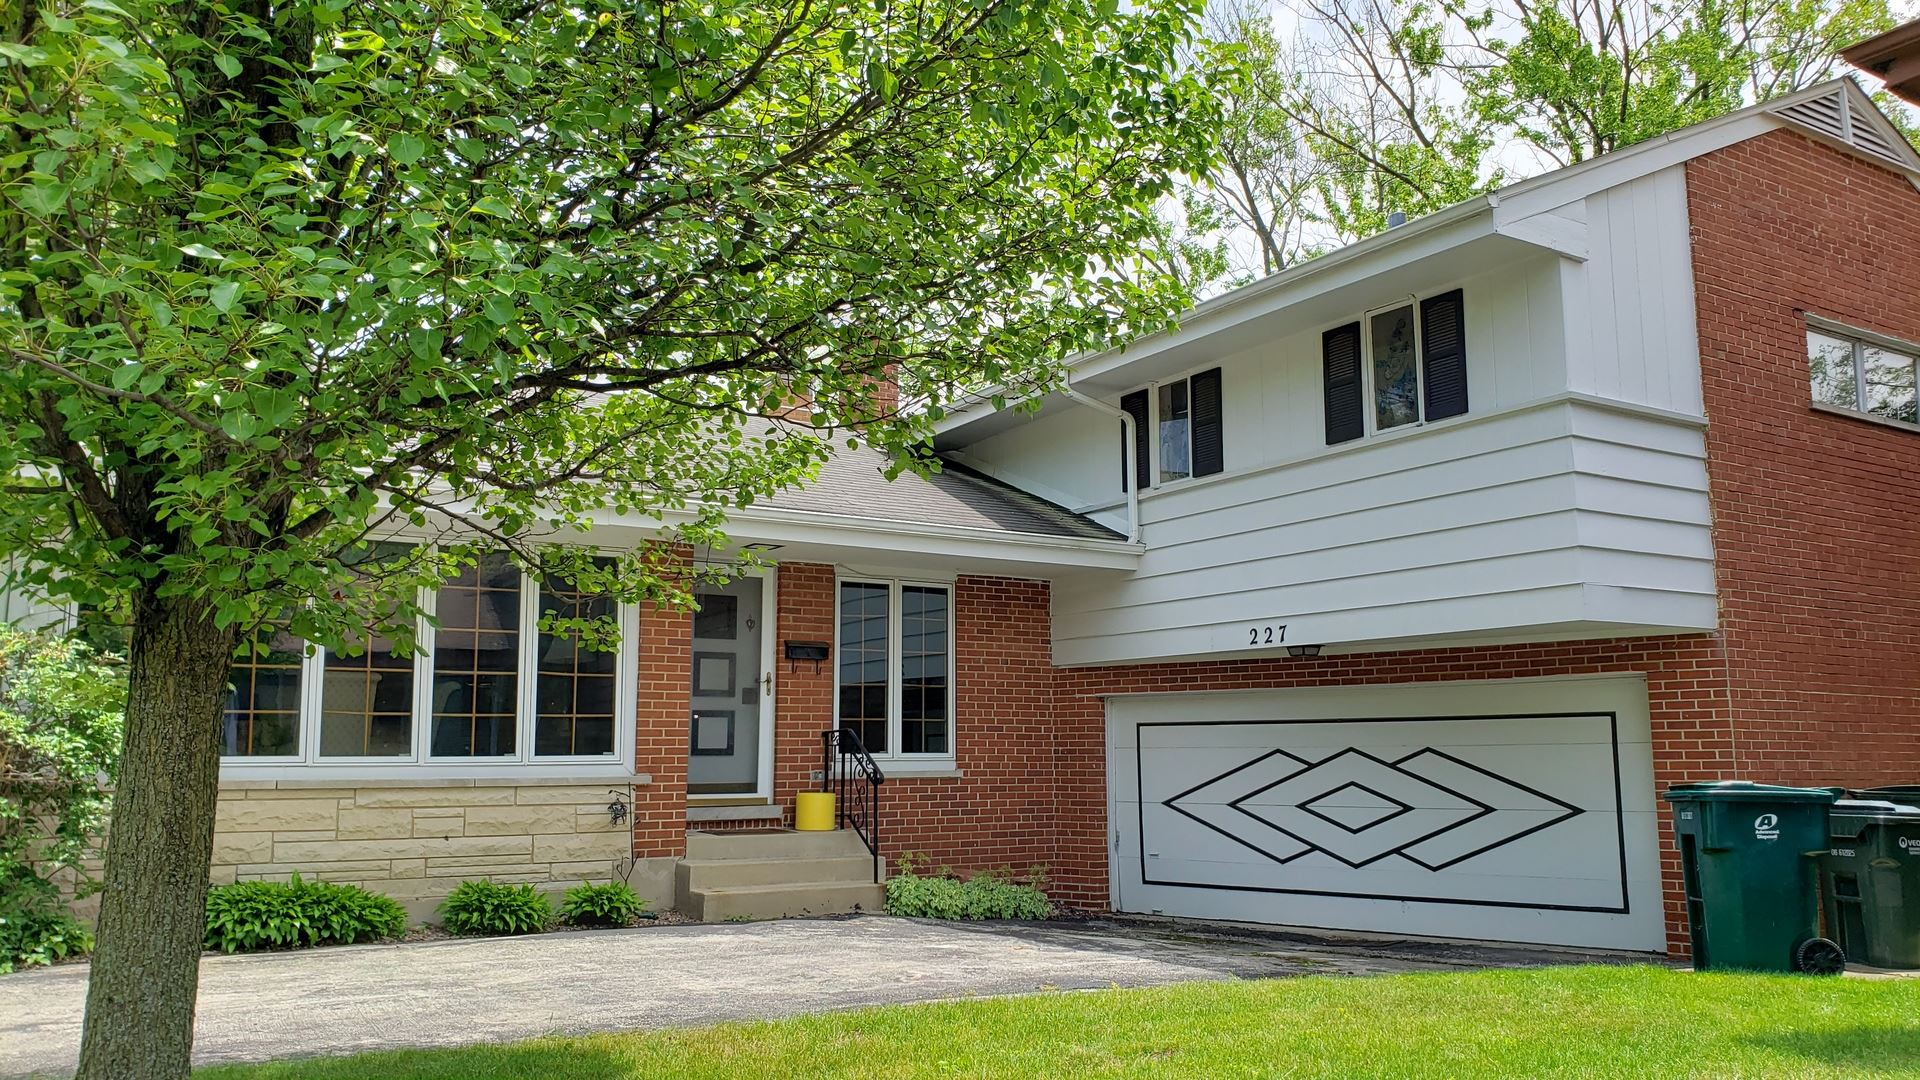 227 Voltz Road, Northbrook, IL 60062 - #: 10764205